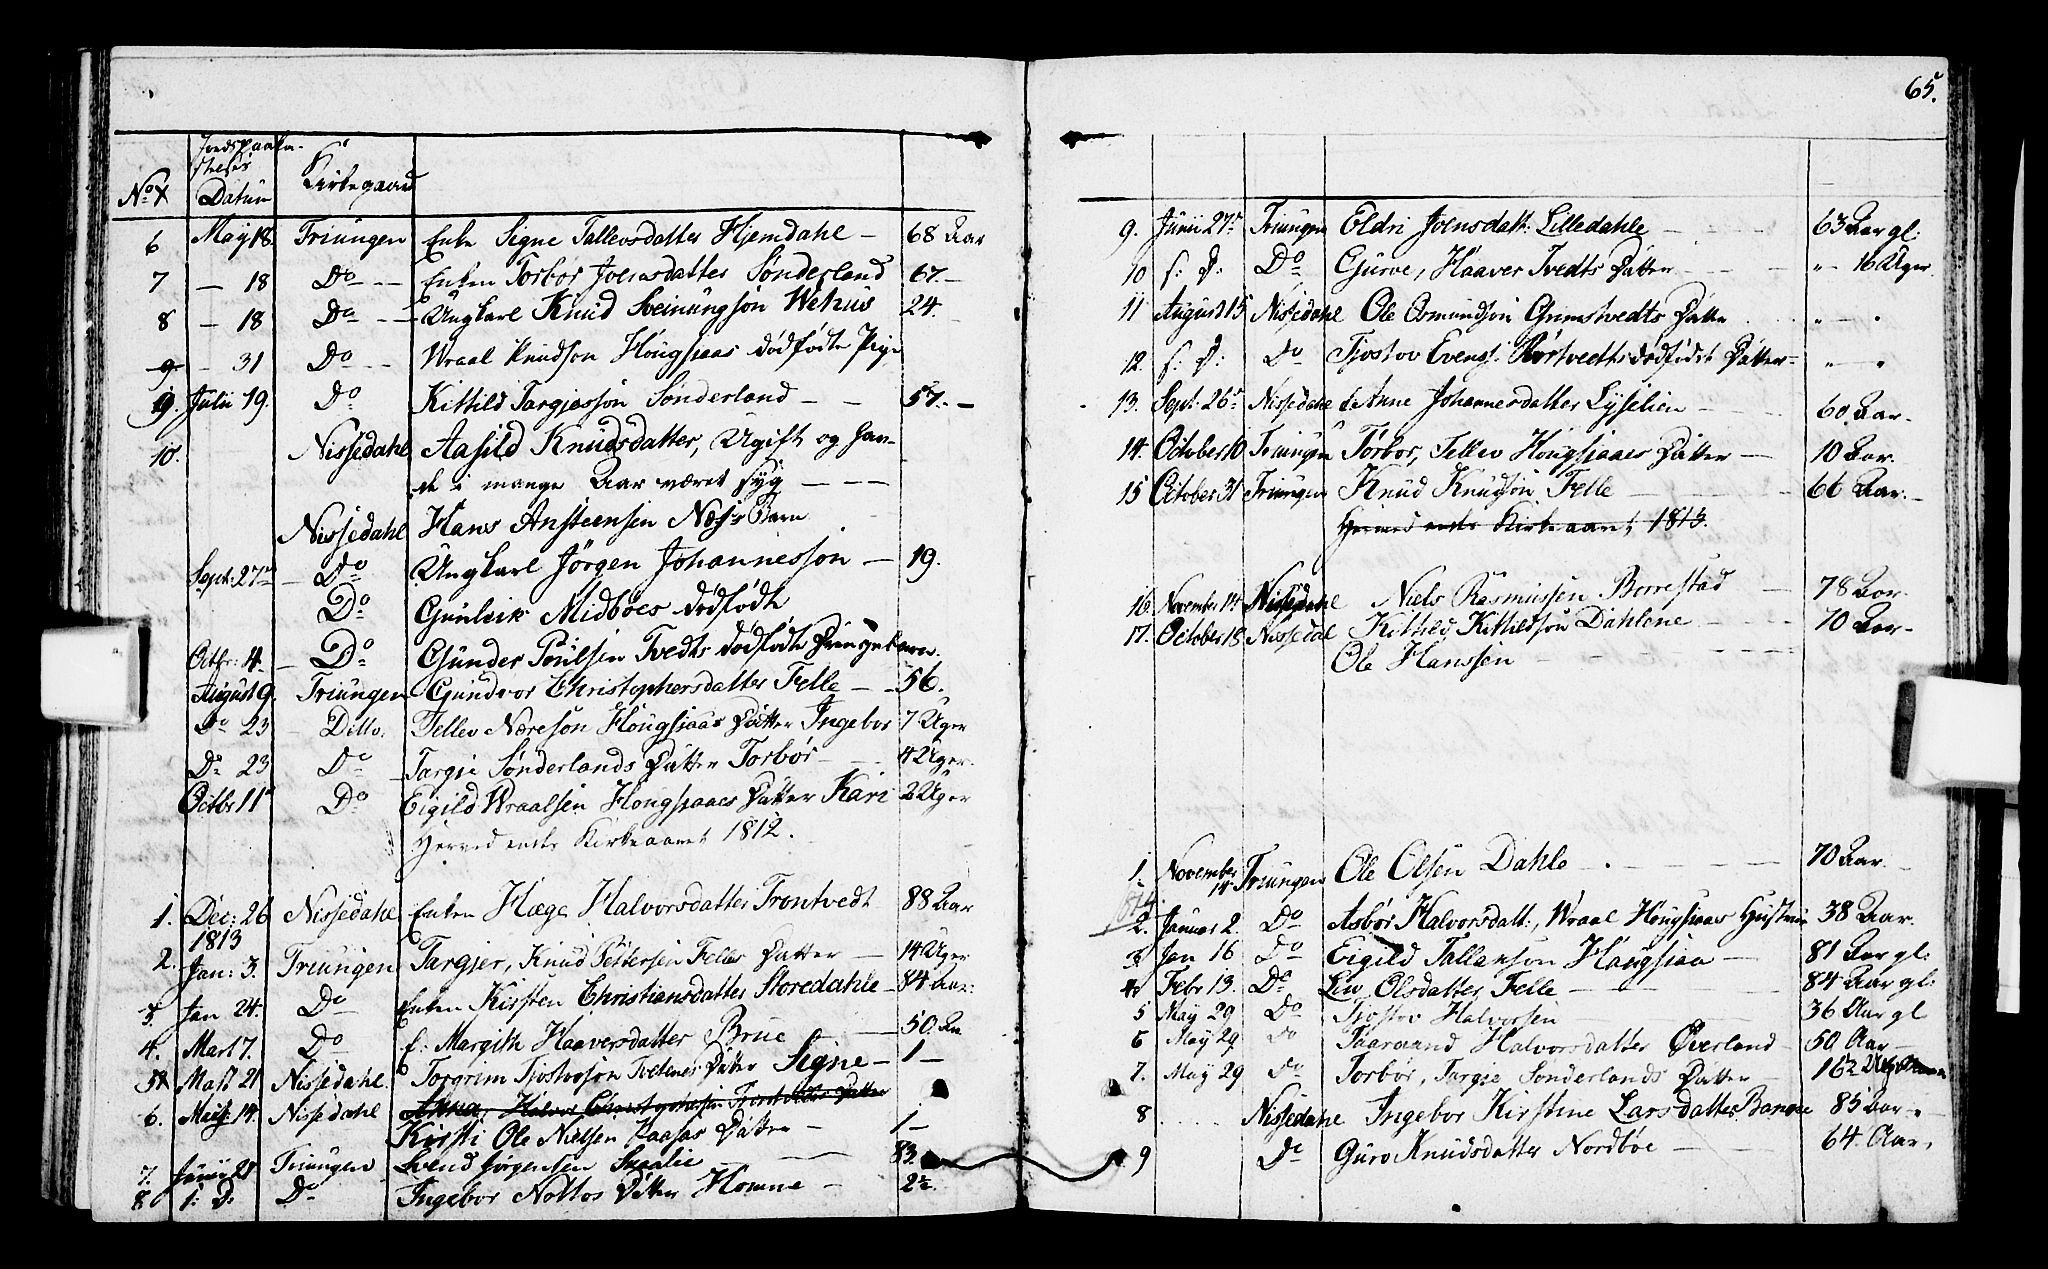 SAKO, Nissedal kirkebøker, F/Fa/L0001: Parish register (official) no. I 1, 1811-1814, p. 65